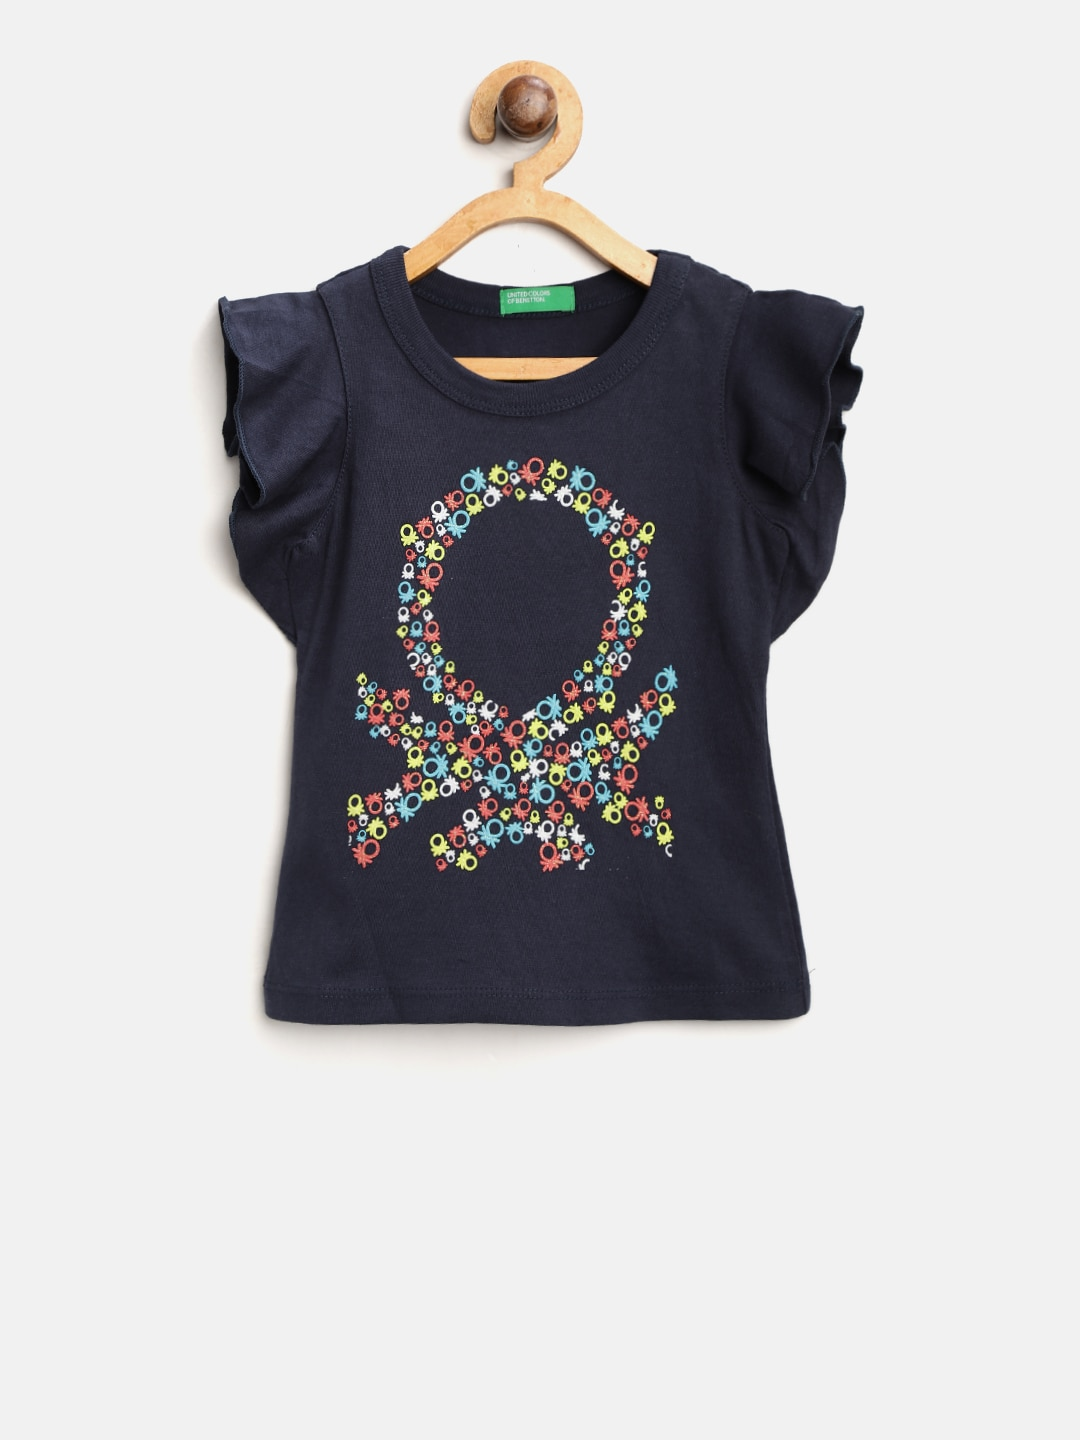 Girls Tops - Buy Stylish Top for Girls Online in India  e3bbc3bc77fe